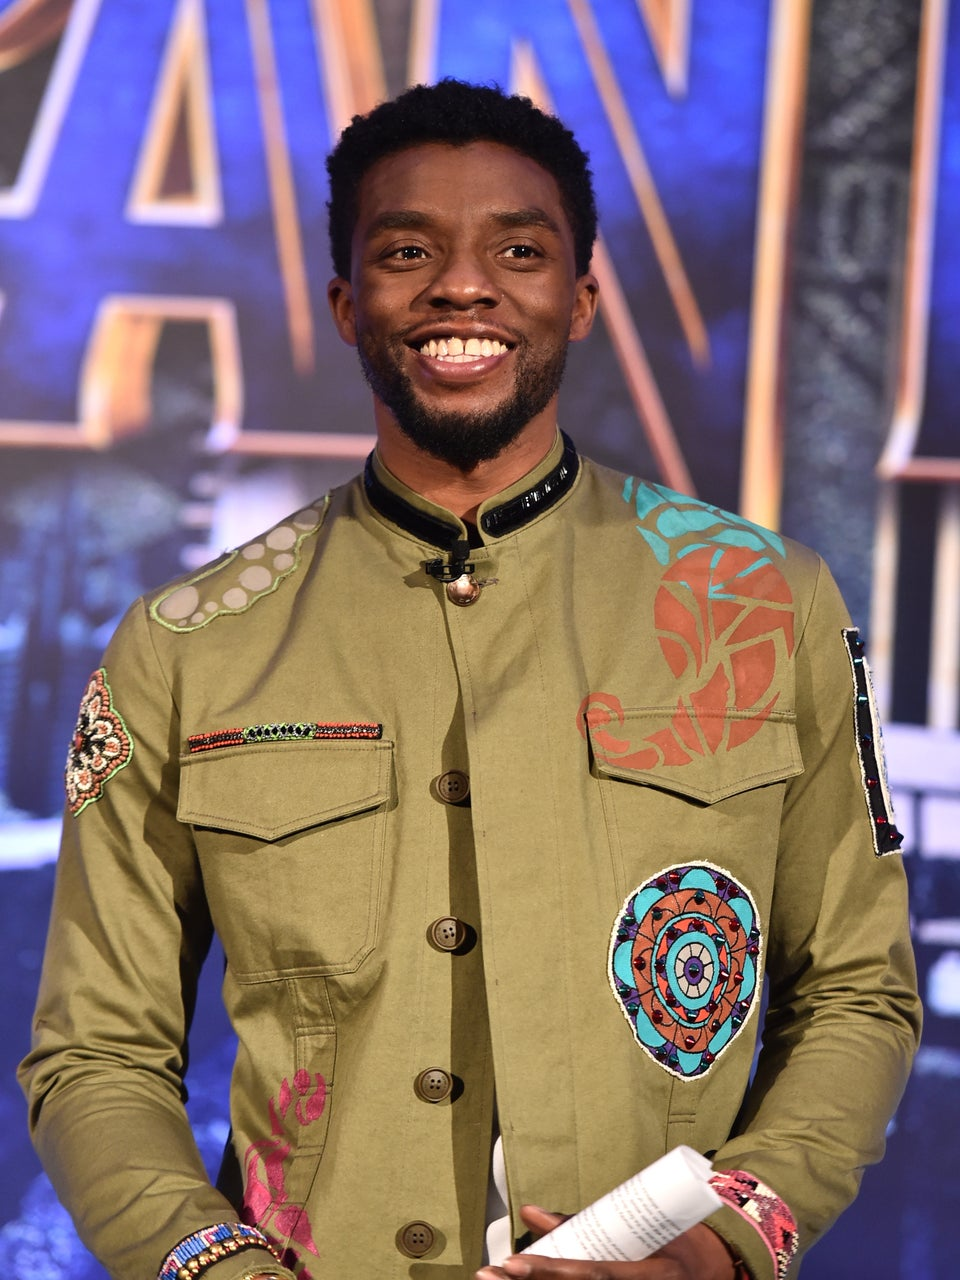 Chadwick Boseman Says He Saw The KKK Holding Rallies While Filming 'Black Panther'